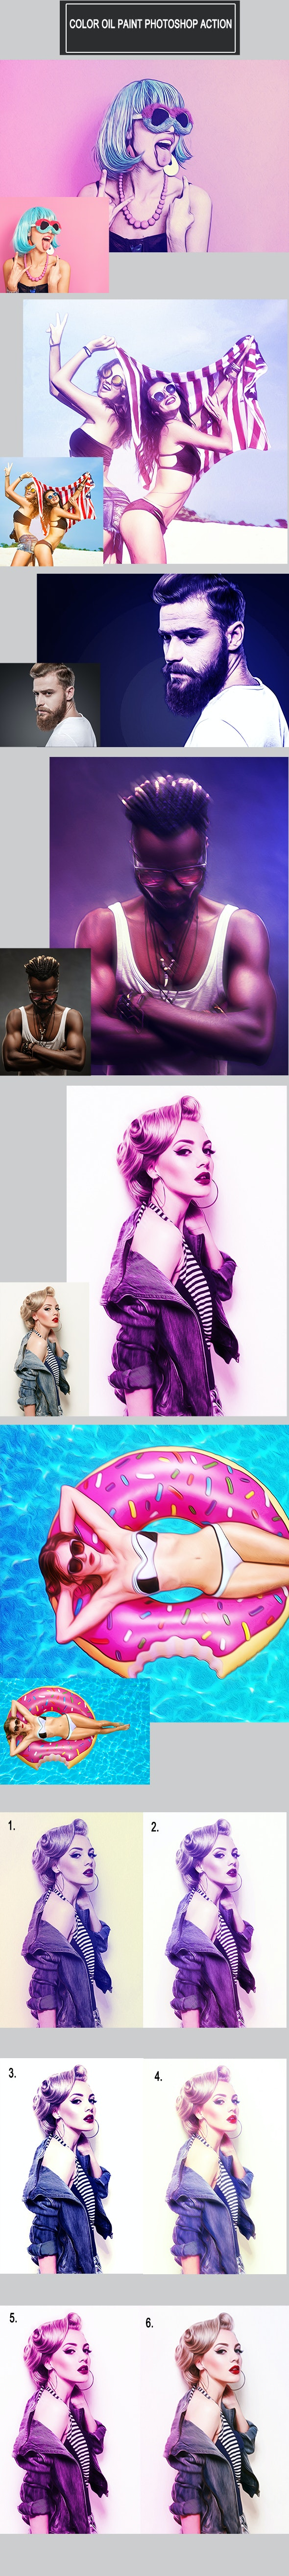 Color Oil Paint Photoshop Action - Photo Effects Actions